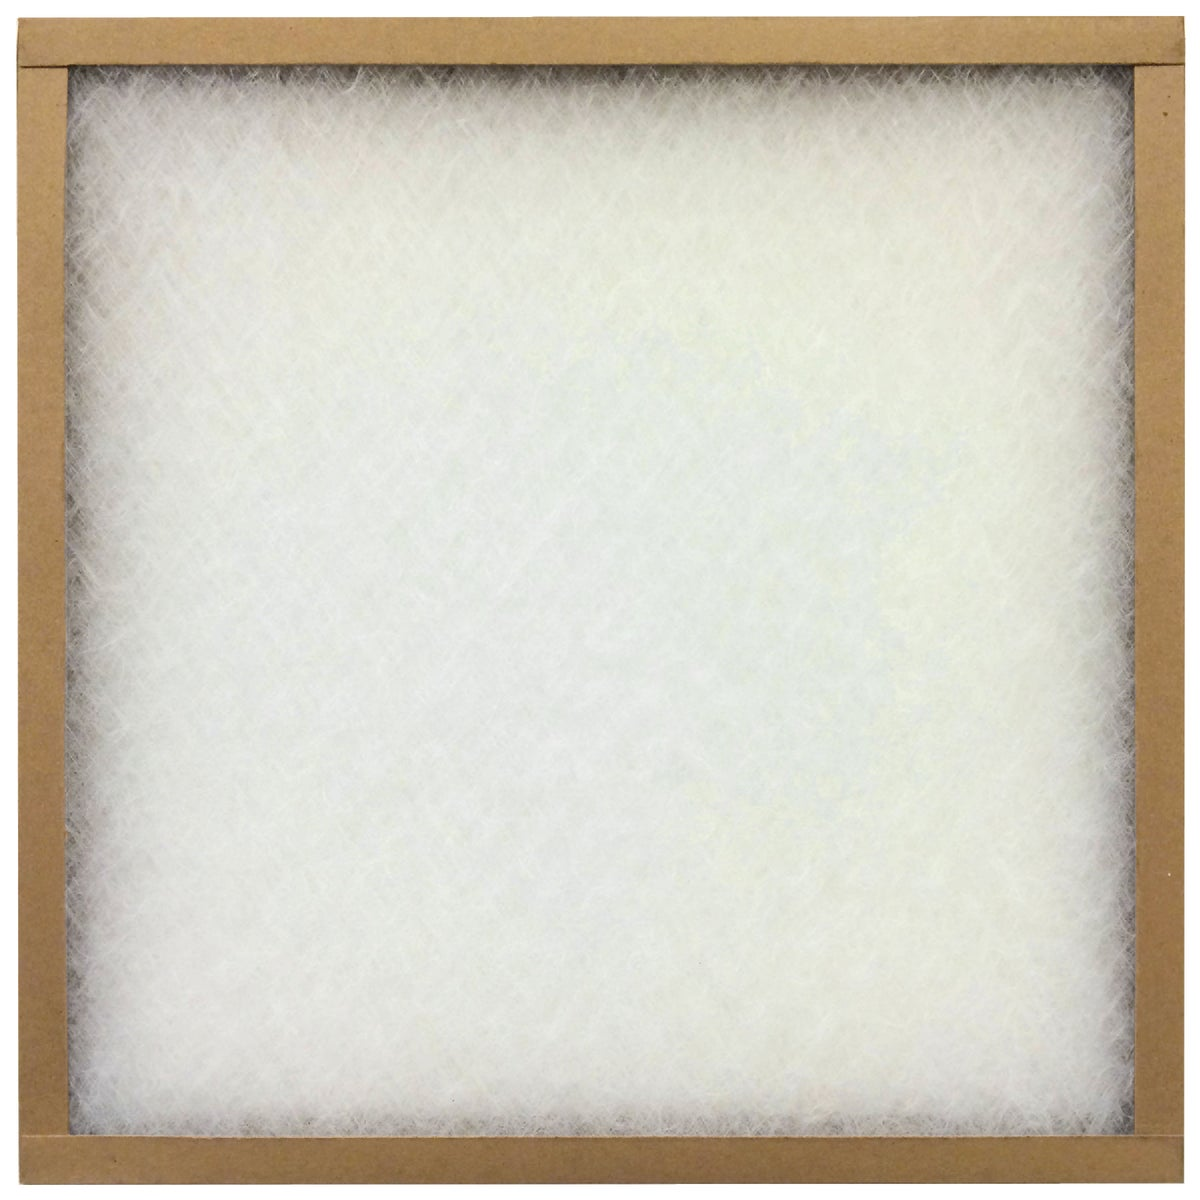 14X20X1 FBRGL AIR FILTER - 10055.011420 by Flanders Corp